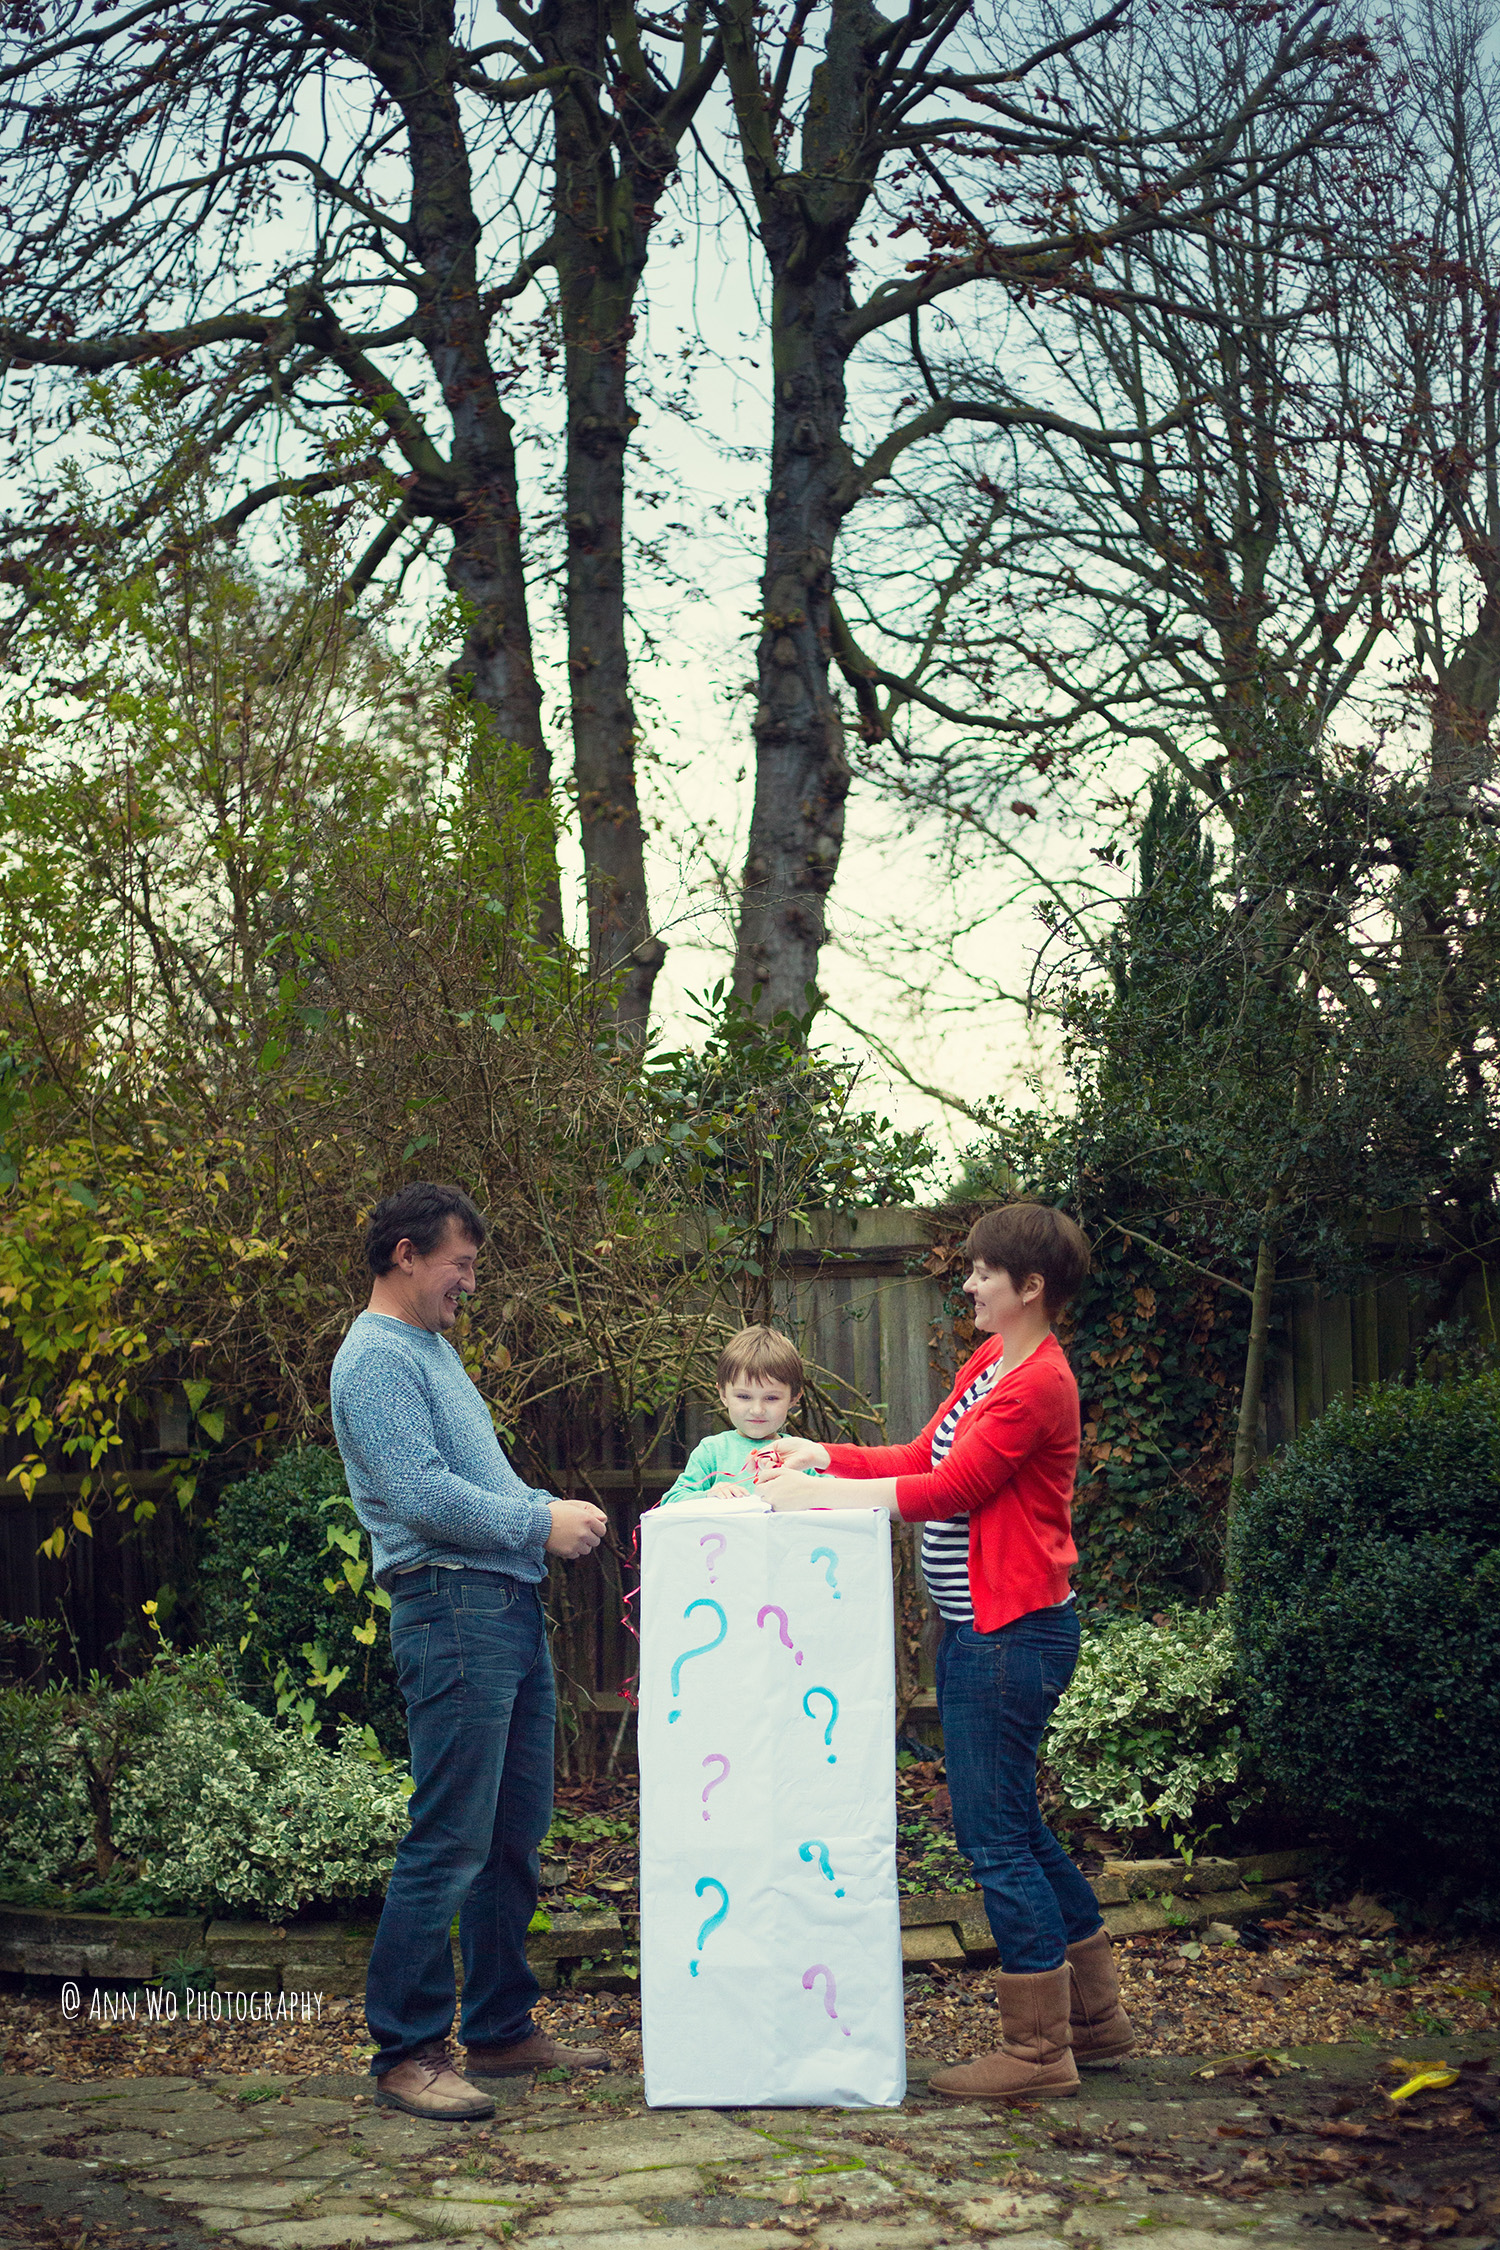 baby-gender-reveal-photo-session-ann-wo-1.jpg